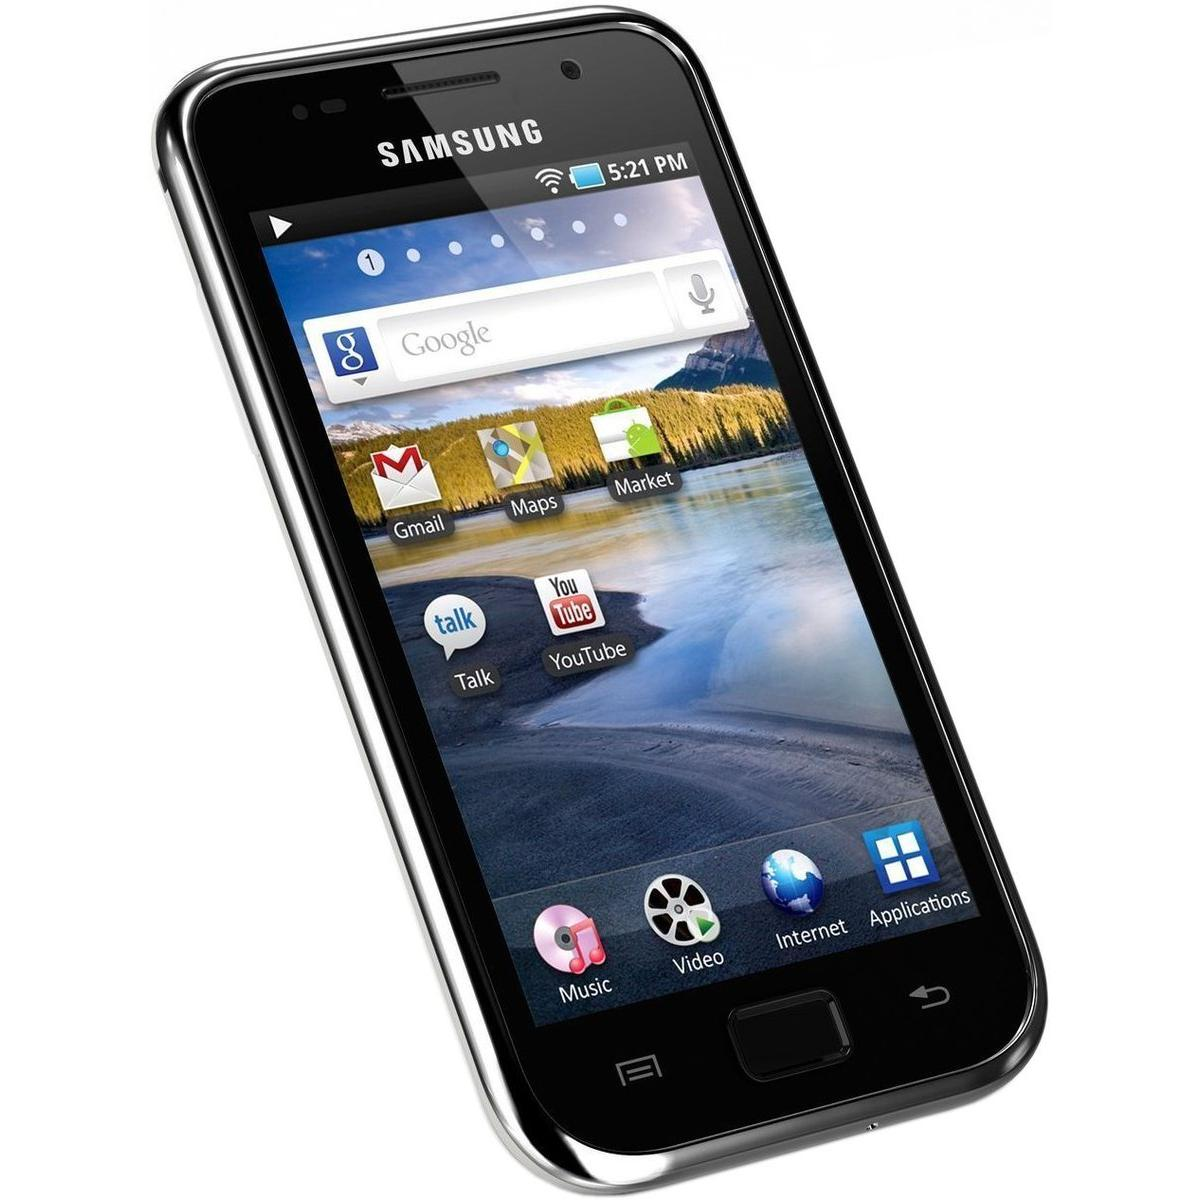 Baladeur Samsung Galaxy Player Wifi 4.0